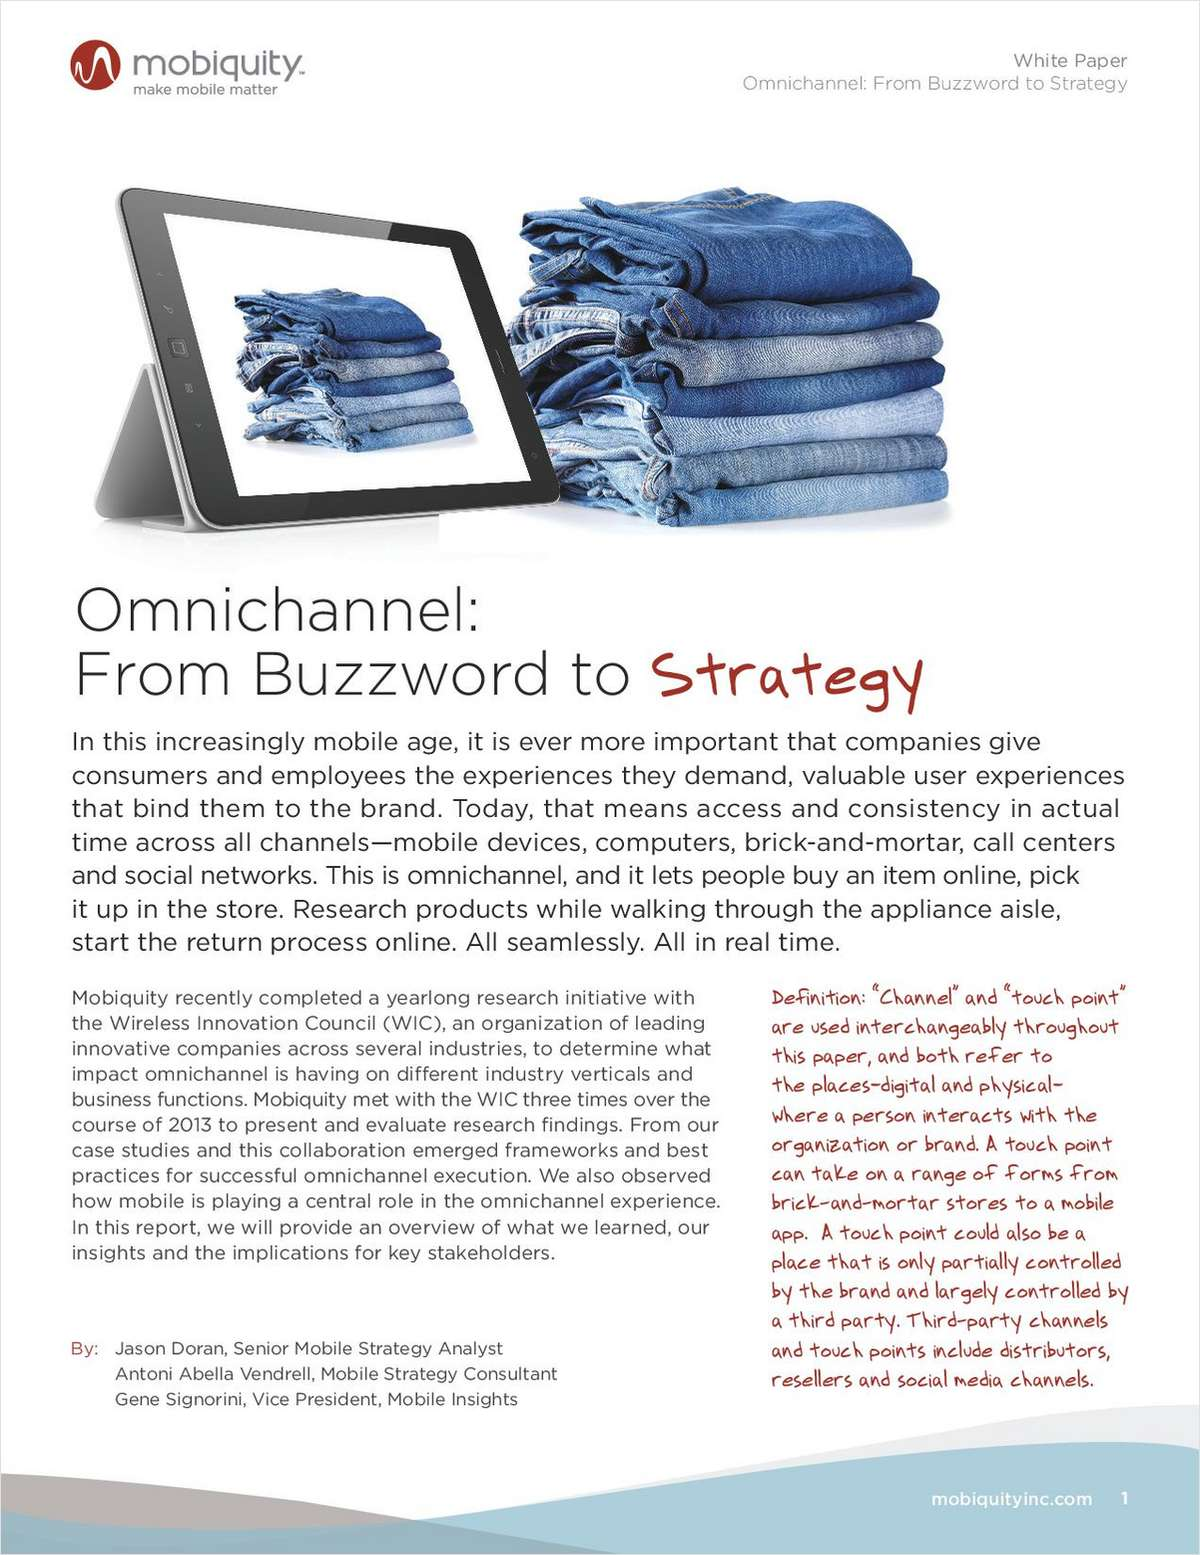 Omnichannel: From Buzzword to Strategy